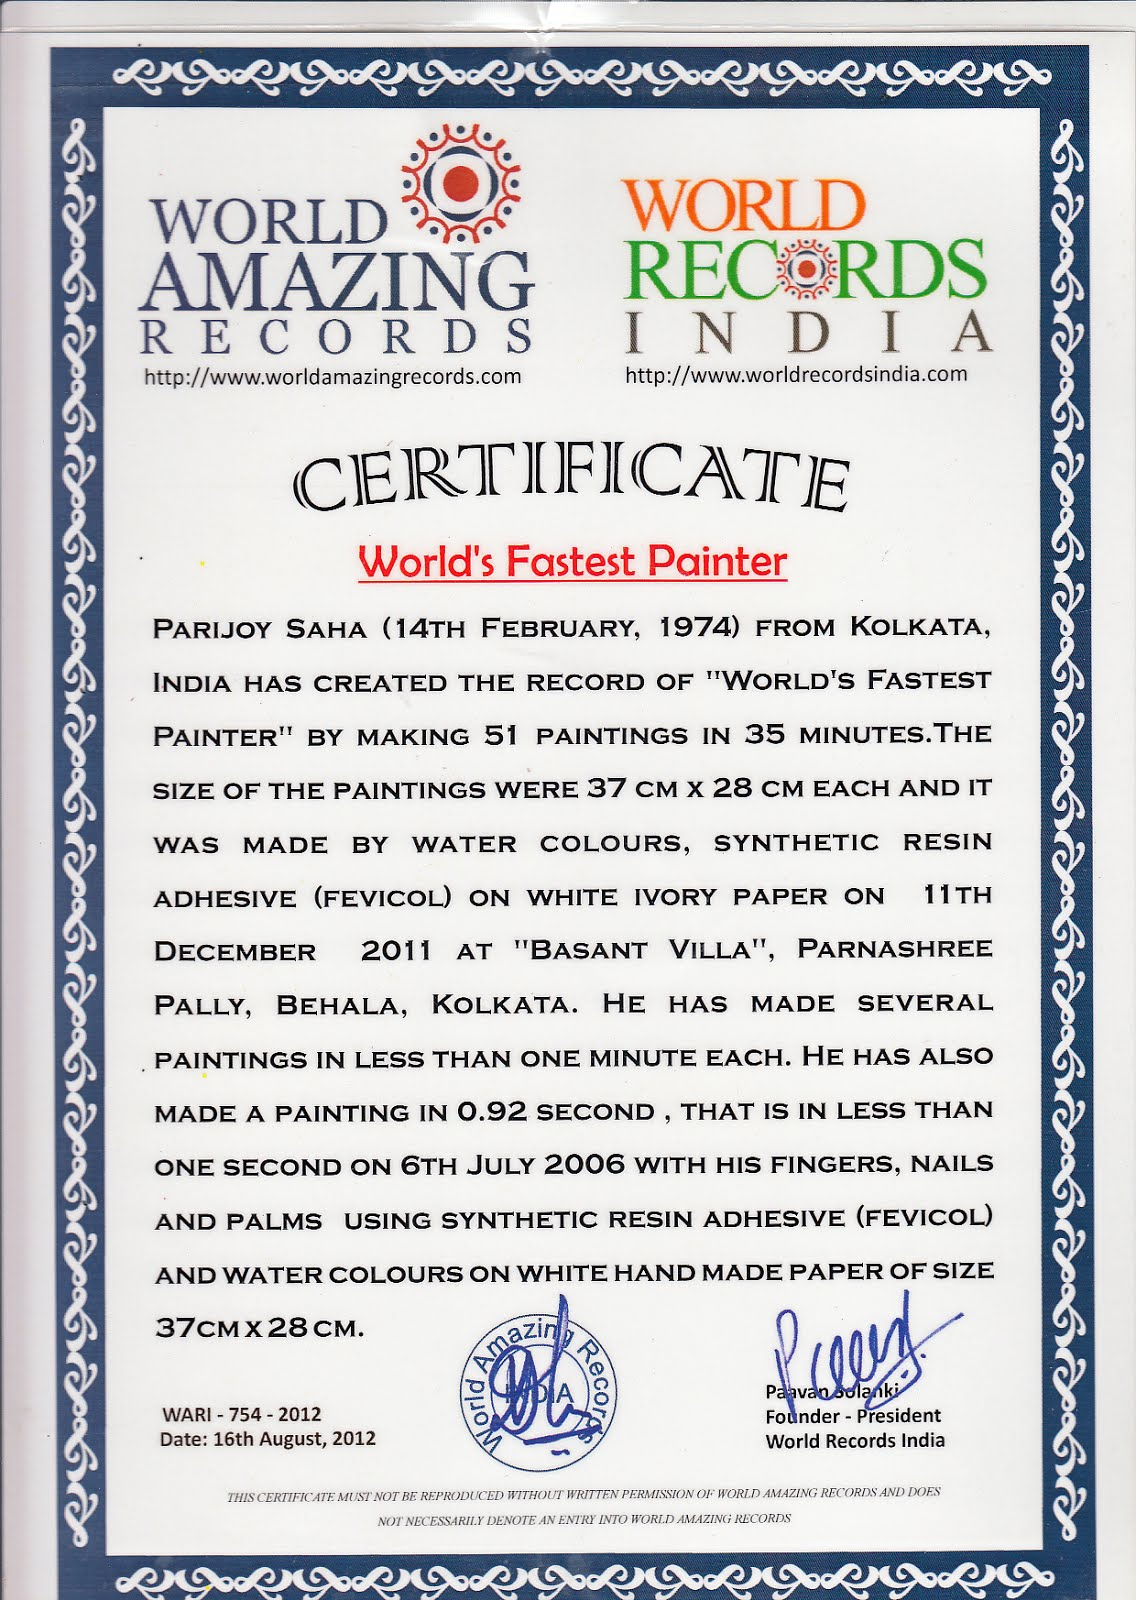 World Record Certificate World's Fastest Painter